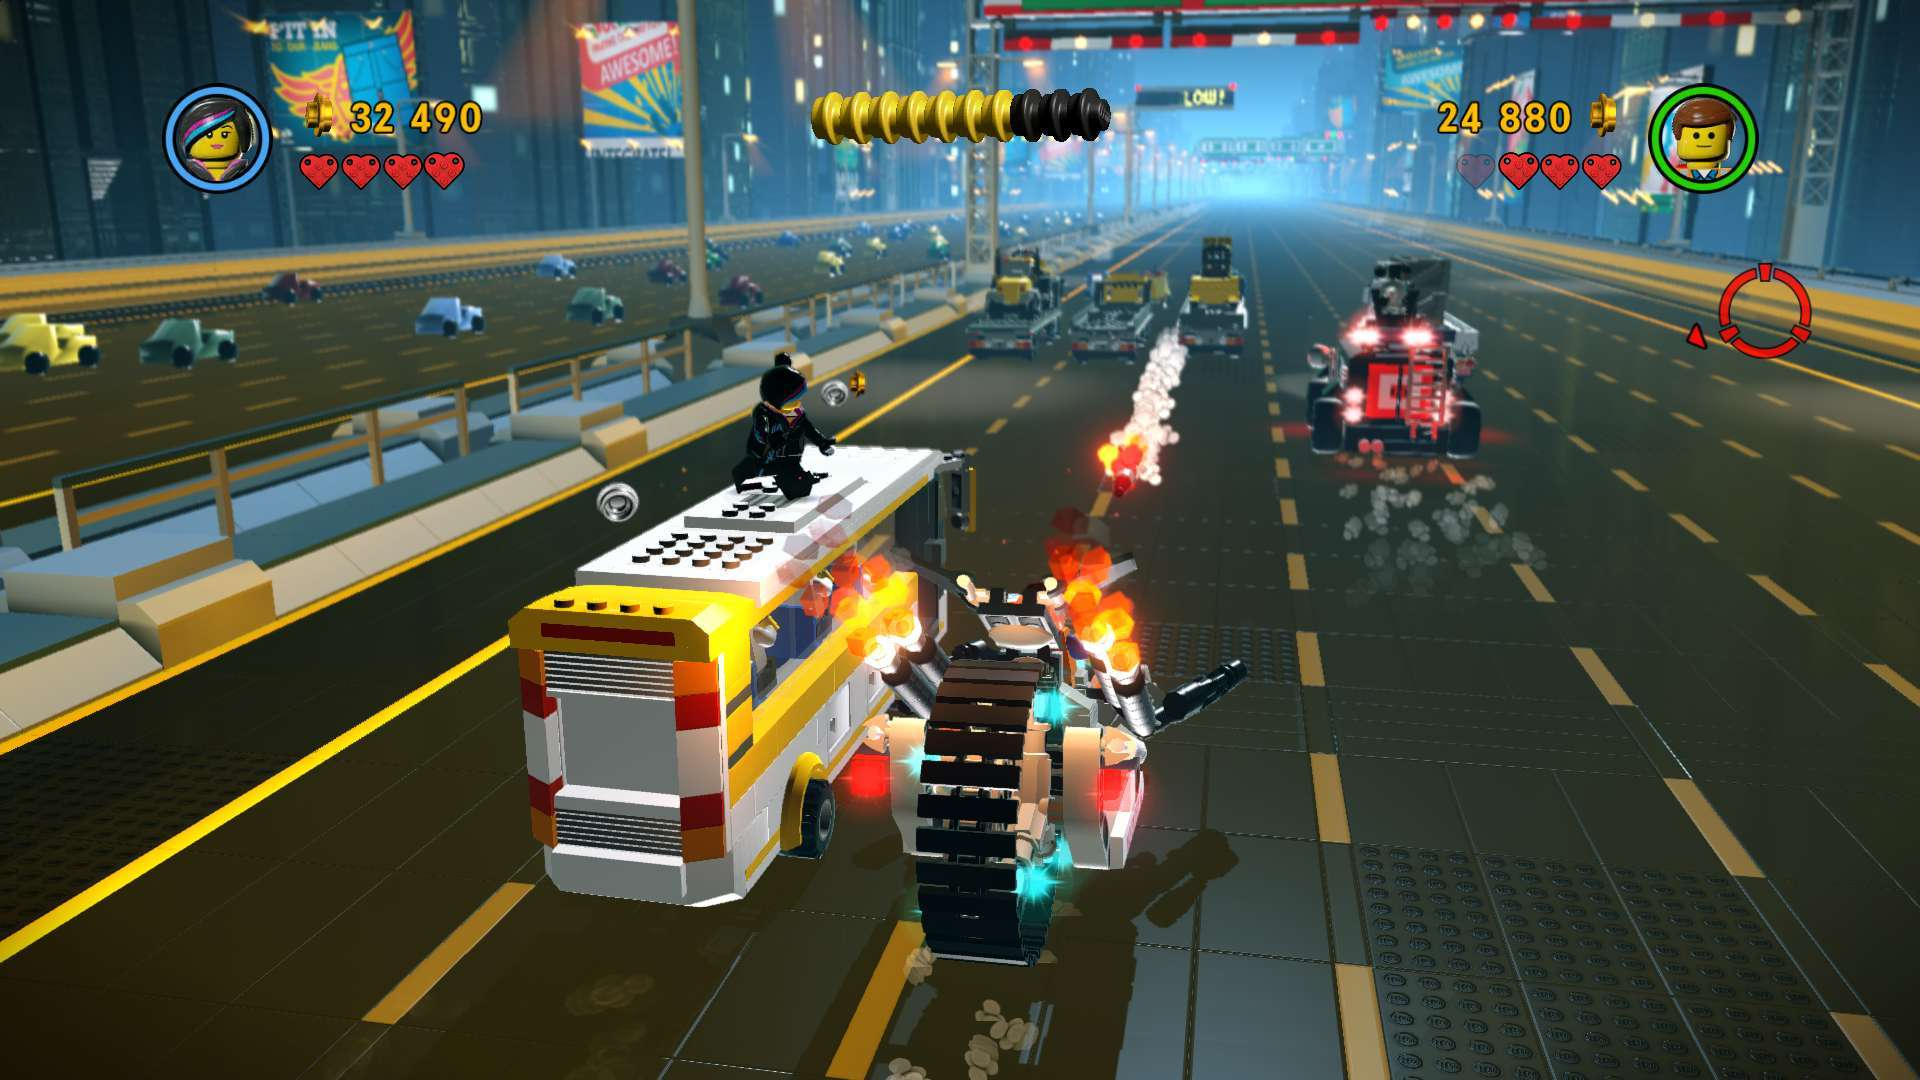 The-LEGO-Movie-Videogame-Screenshot-01.jpg